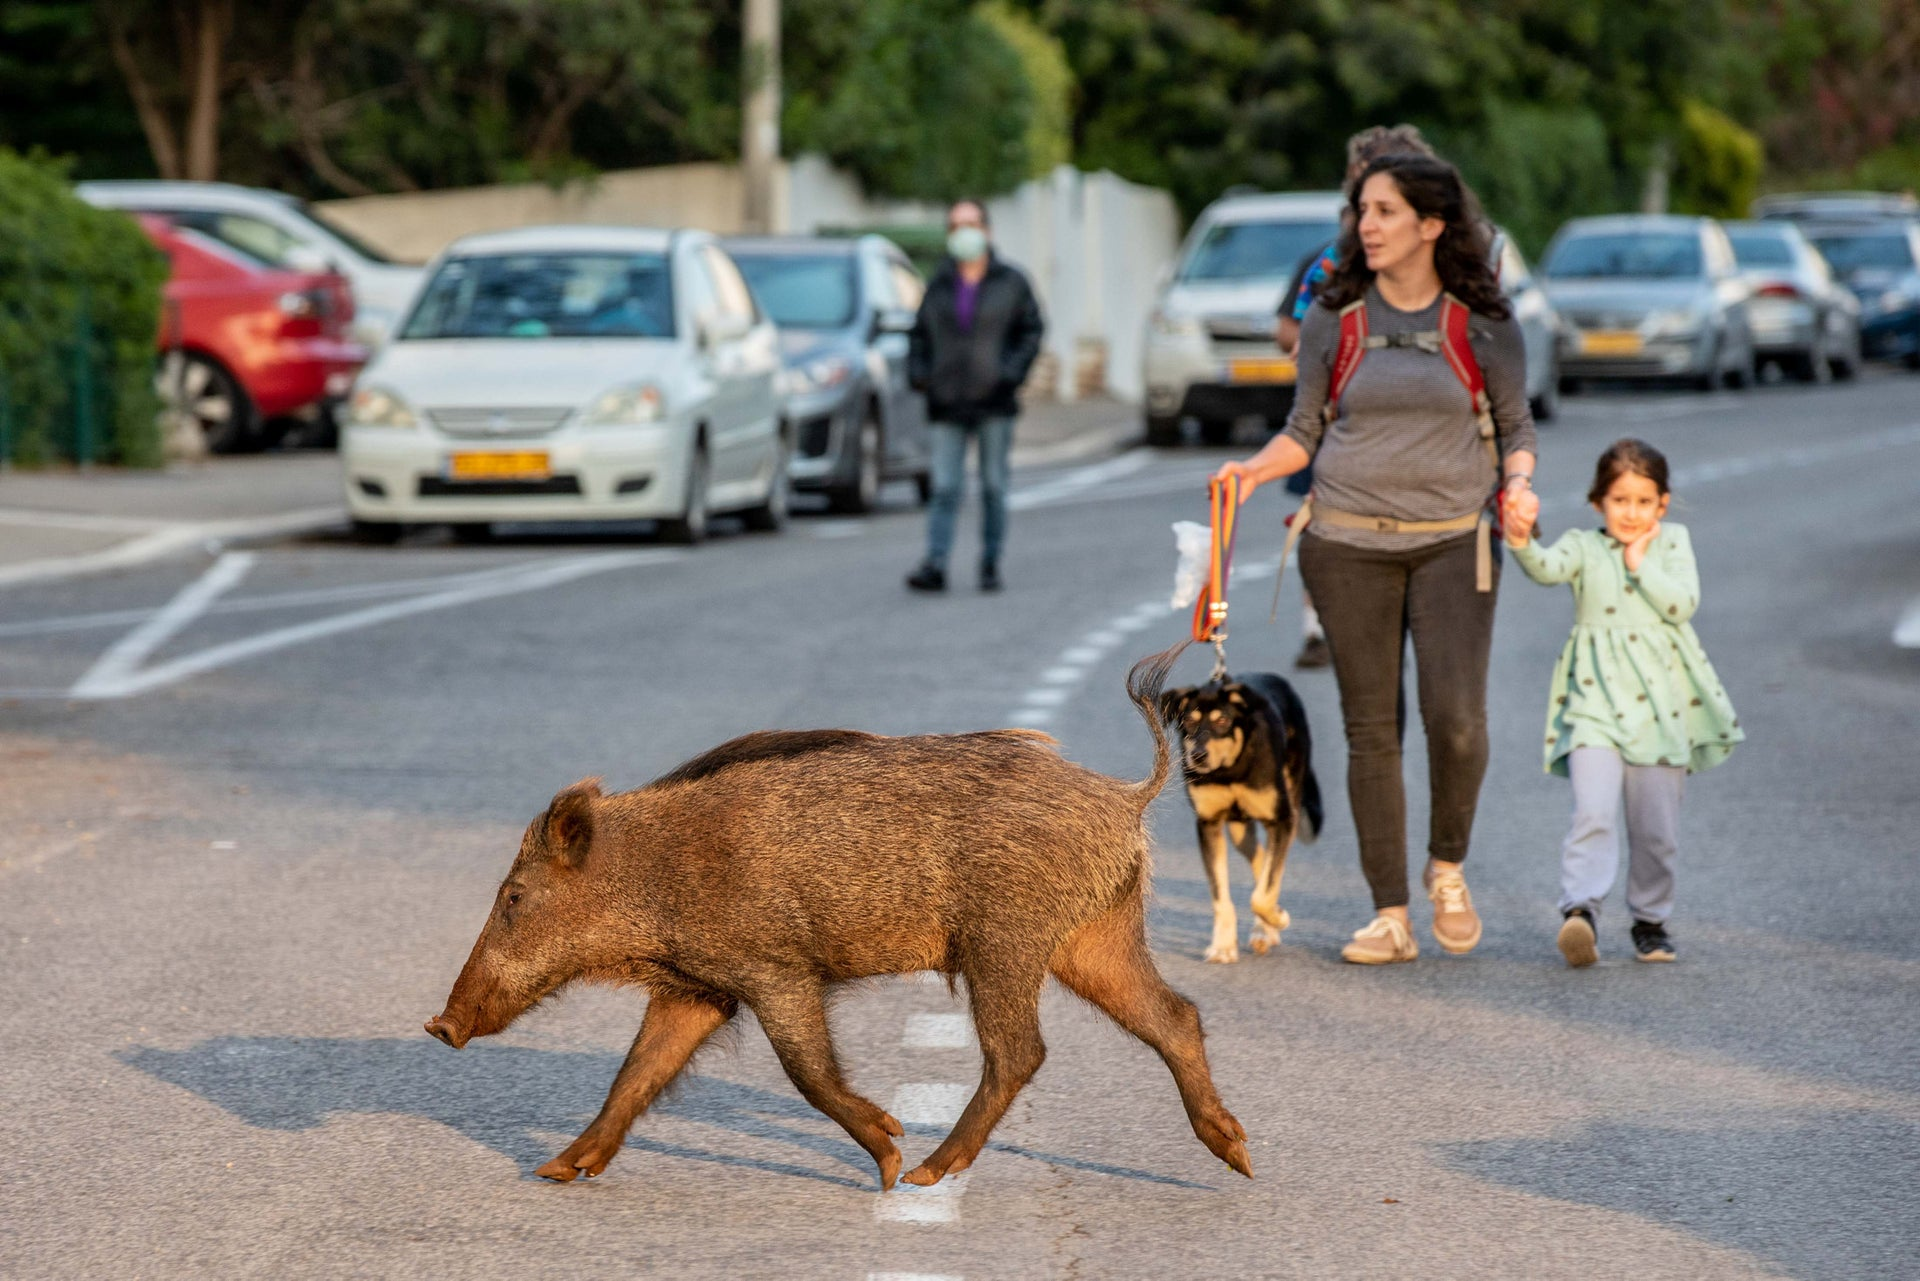 Wild boars in Haifa, northern Israel, April 13, 2020.